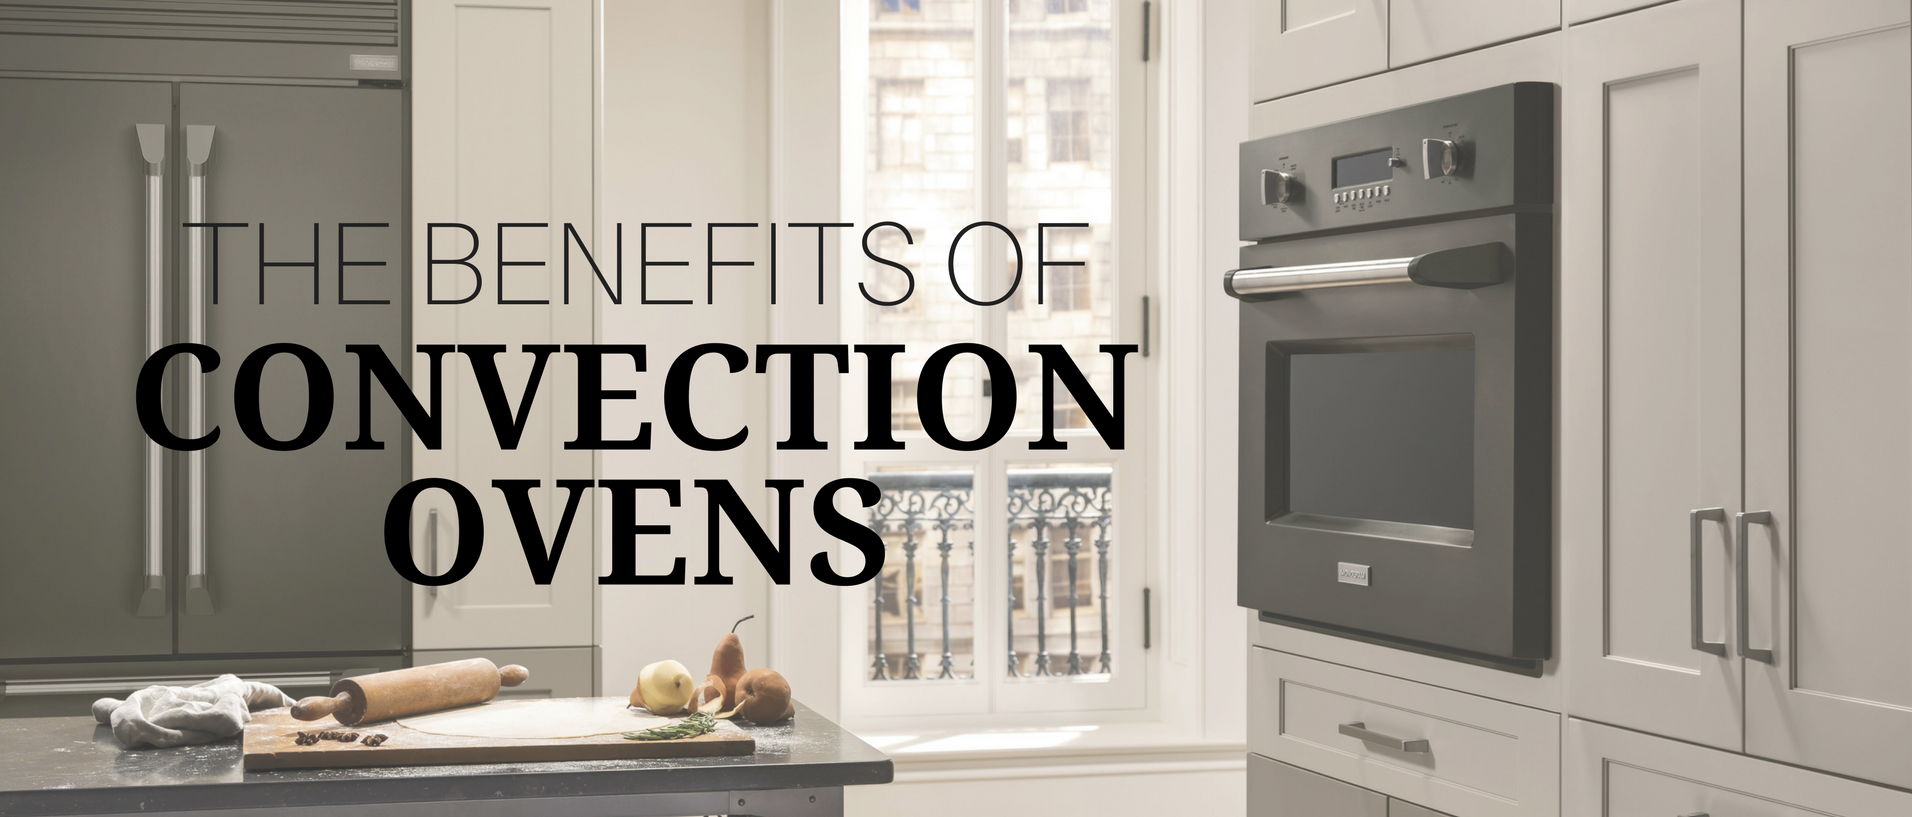 Benefits of Convection Ovens Banner